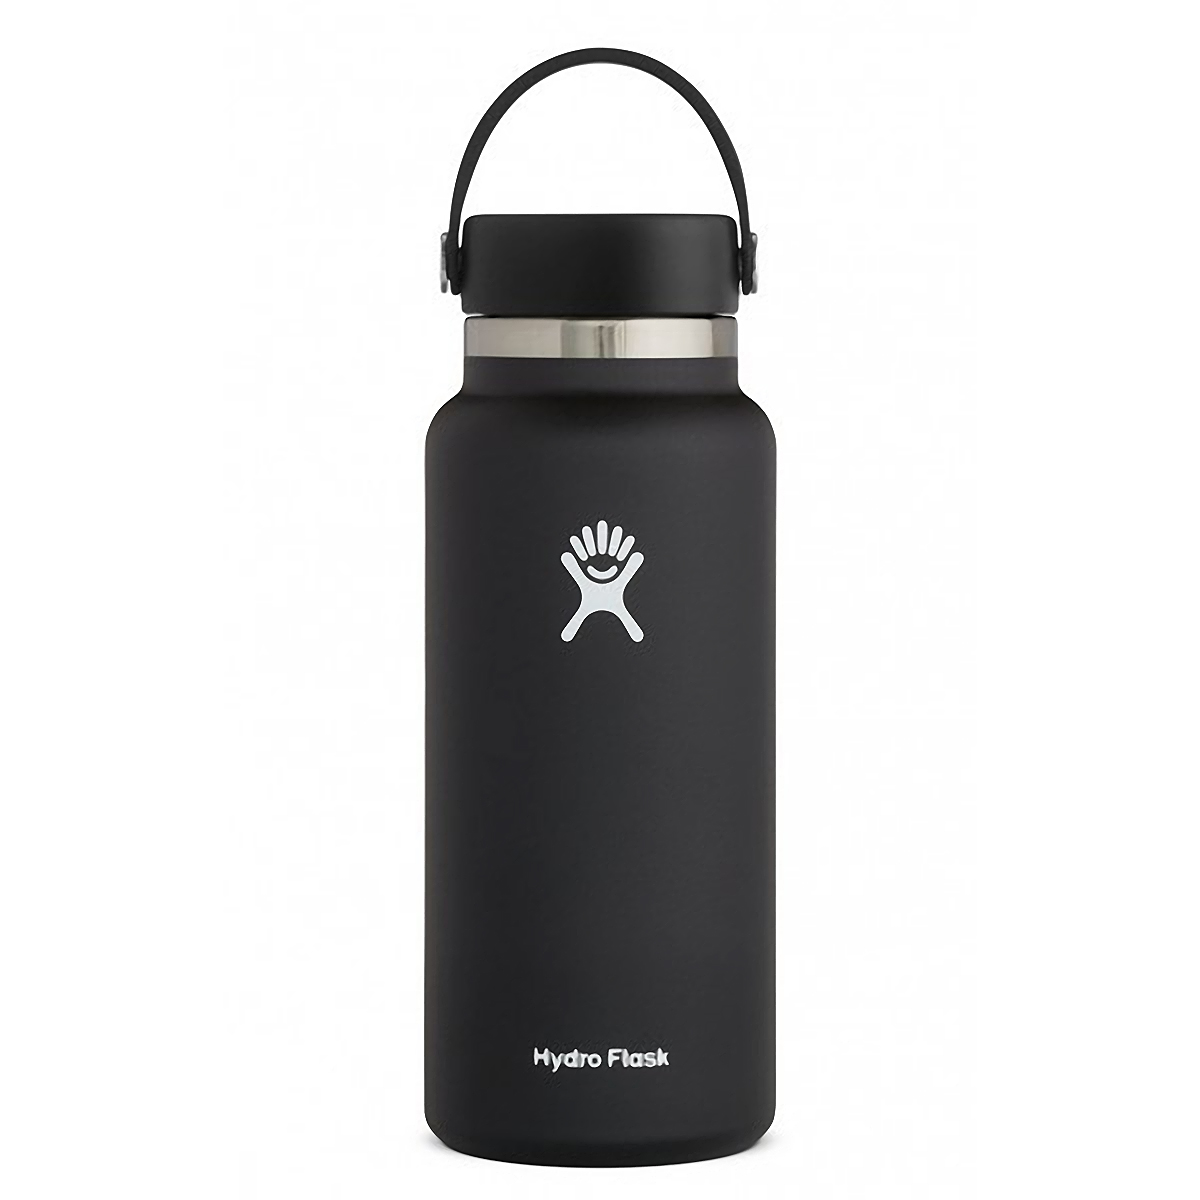 Hydro Flask 32 oz Wide Mouth Bottle - Color: Black Size: One Size, Black, large, image 1